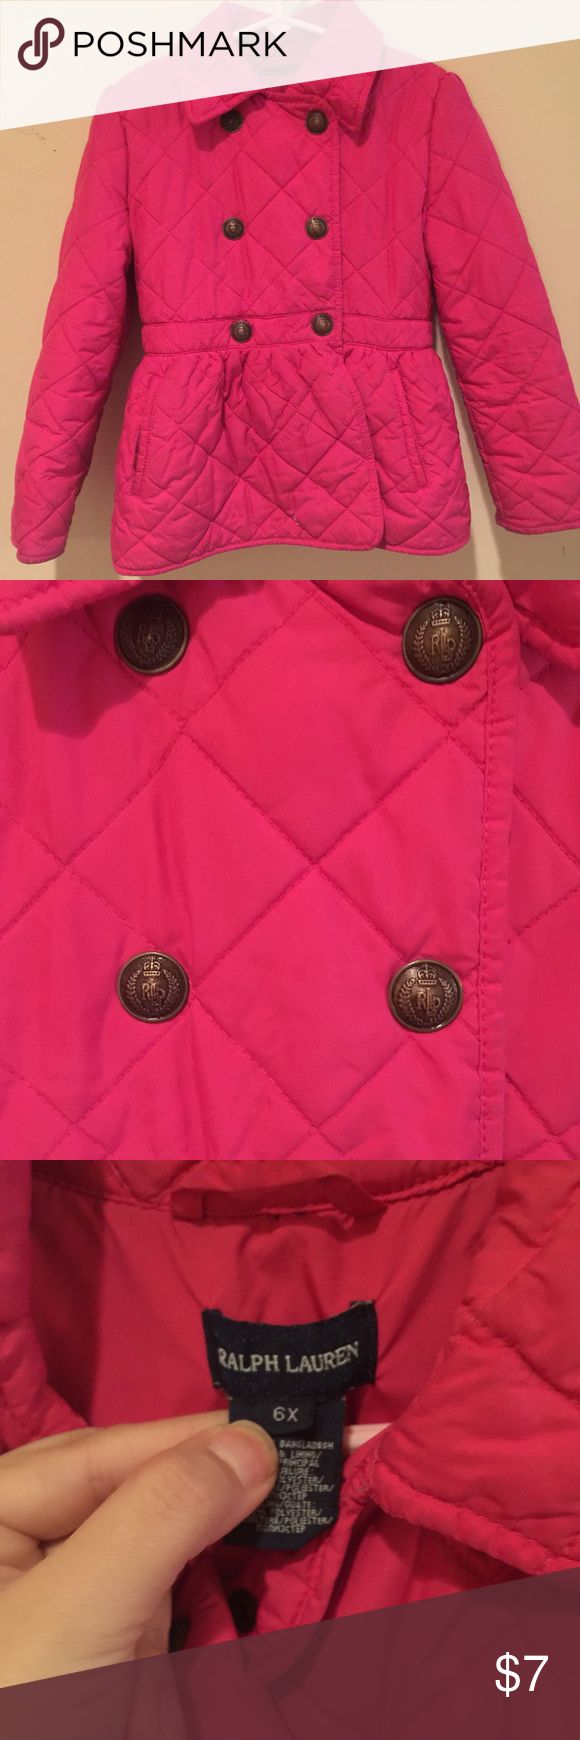 Size 6 , 6x girls jacket/coat Pink Ralph Lauren jacket/coat super cute and comfy my daughter loves wearing it plz check the last 2 pics it does have 2 flaws price reflects it . Isn't noticeable first picture you can't really tell Ralph Lauren Jackets & Coats Puffers